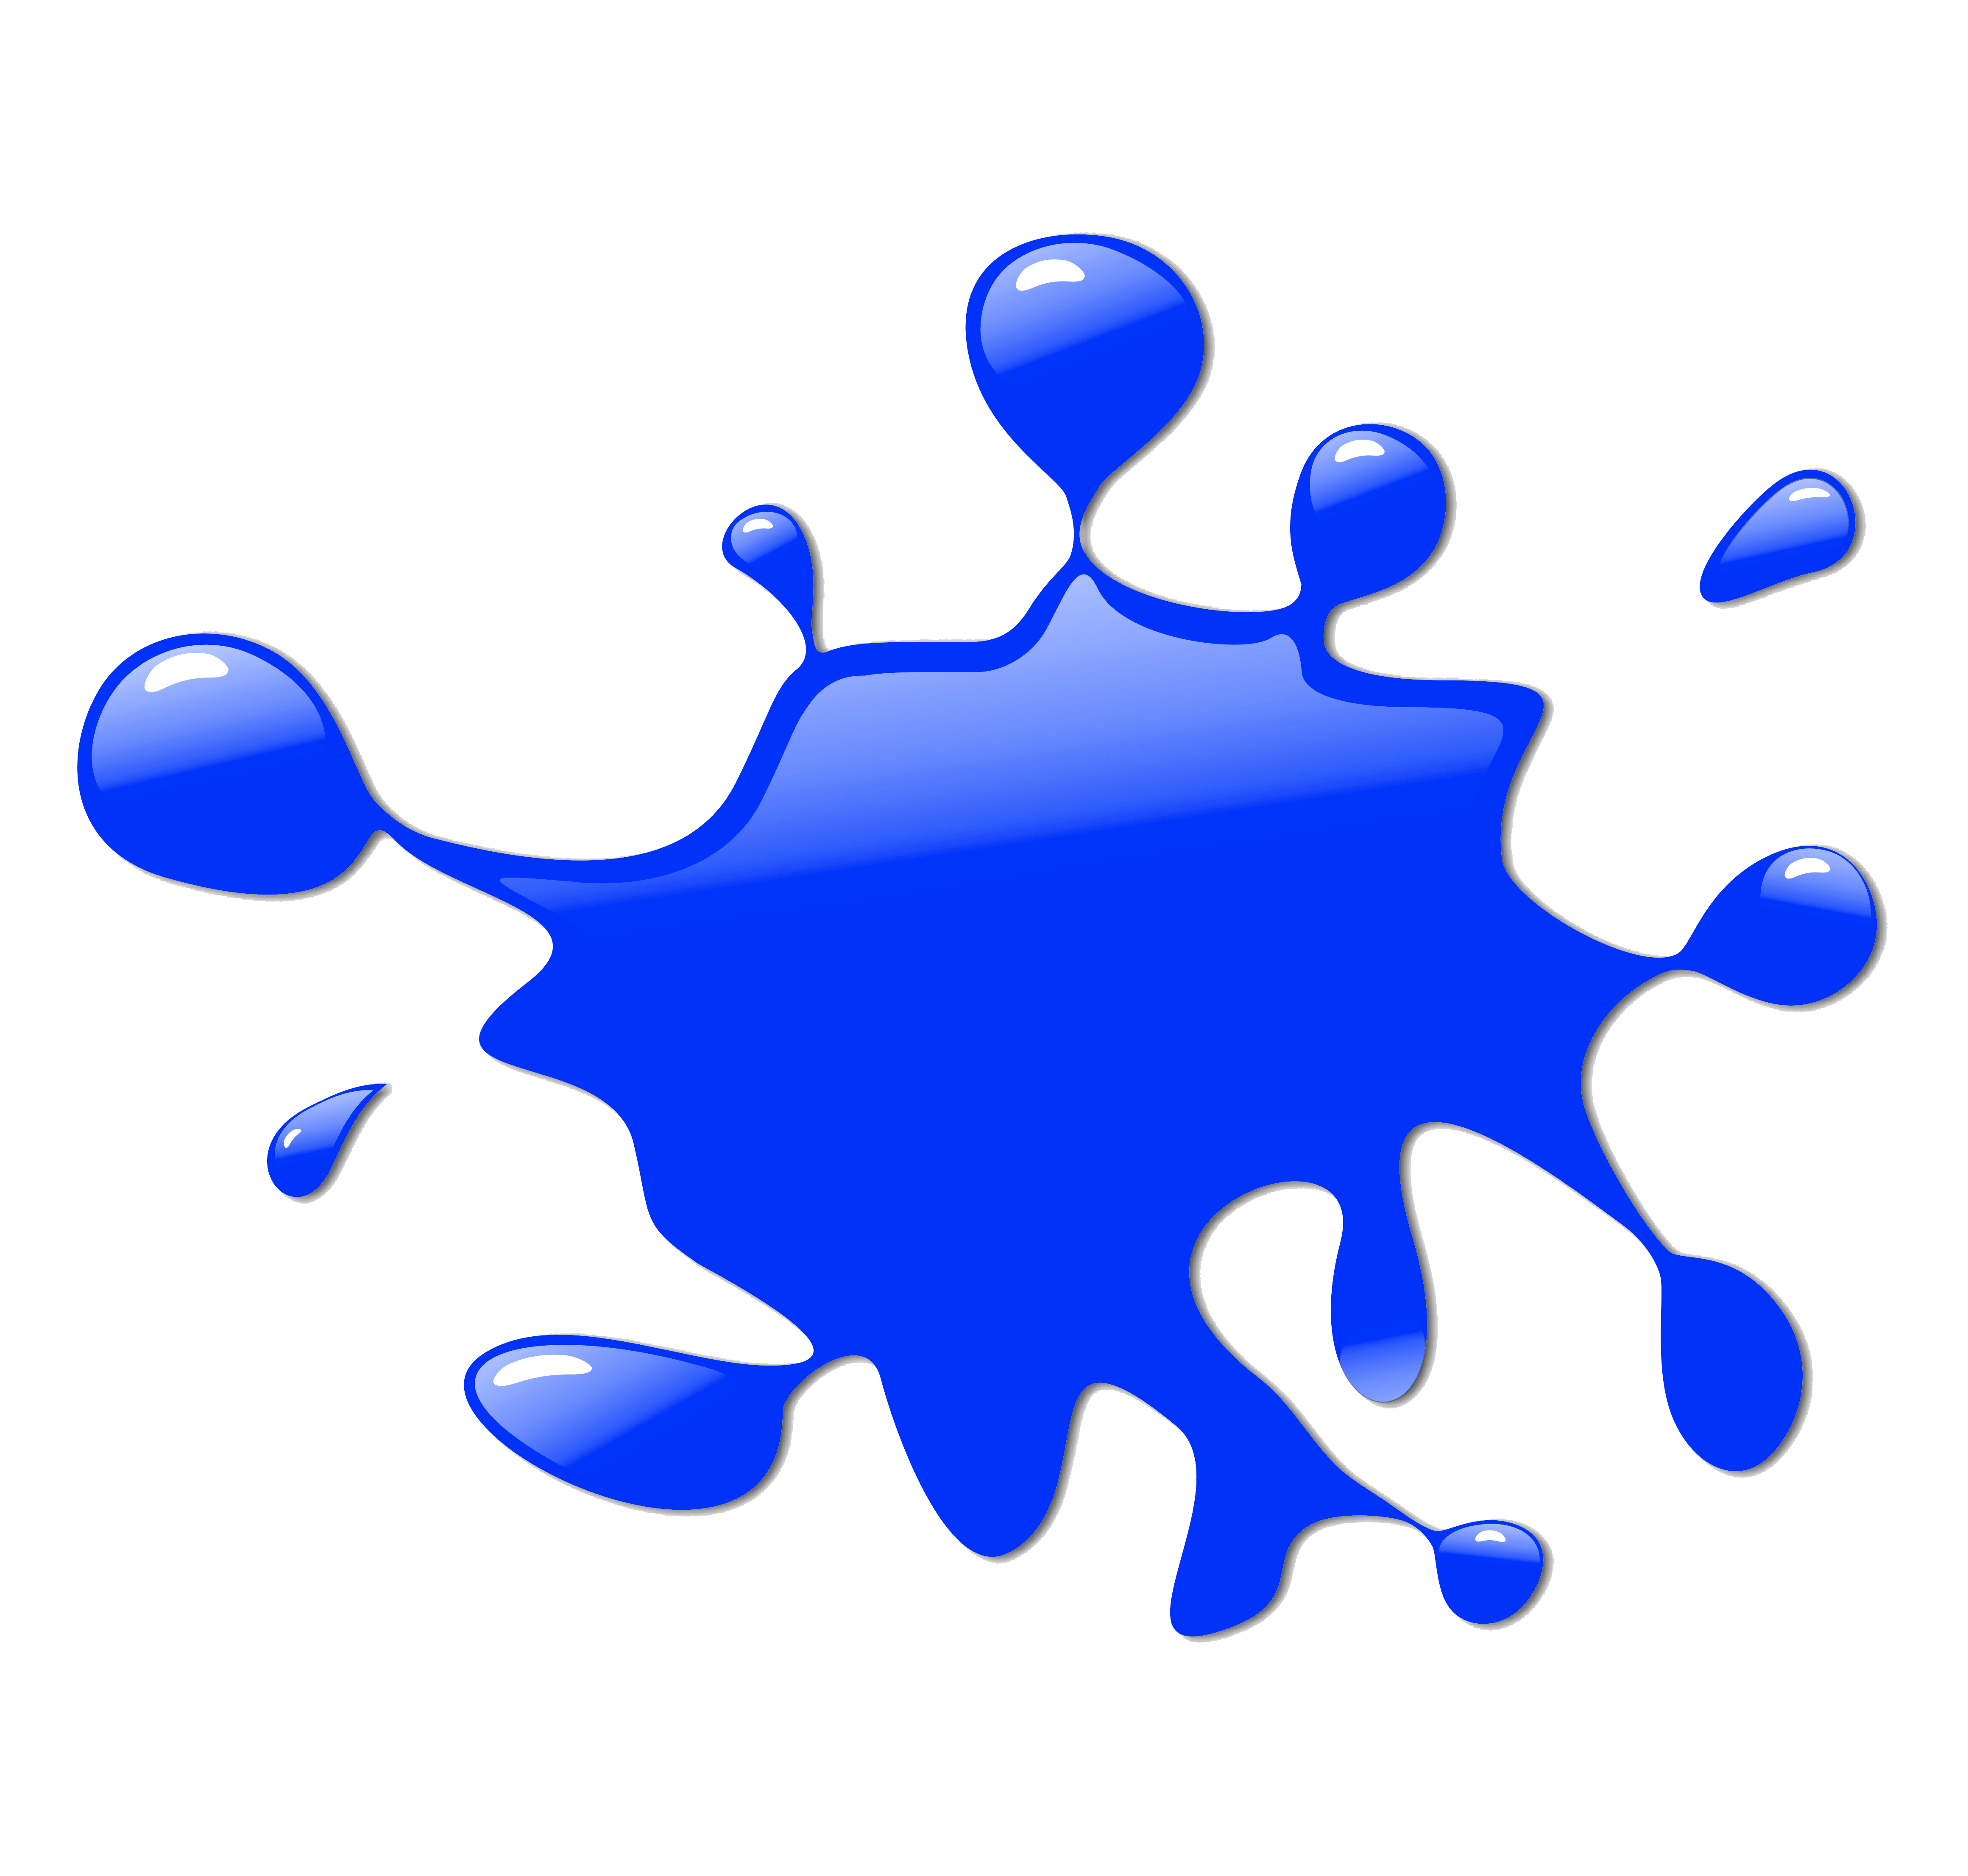 Blue Paint Splash Clipart